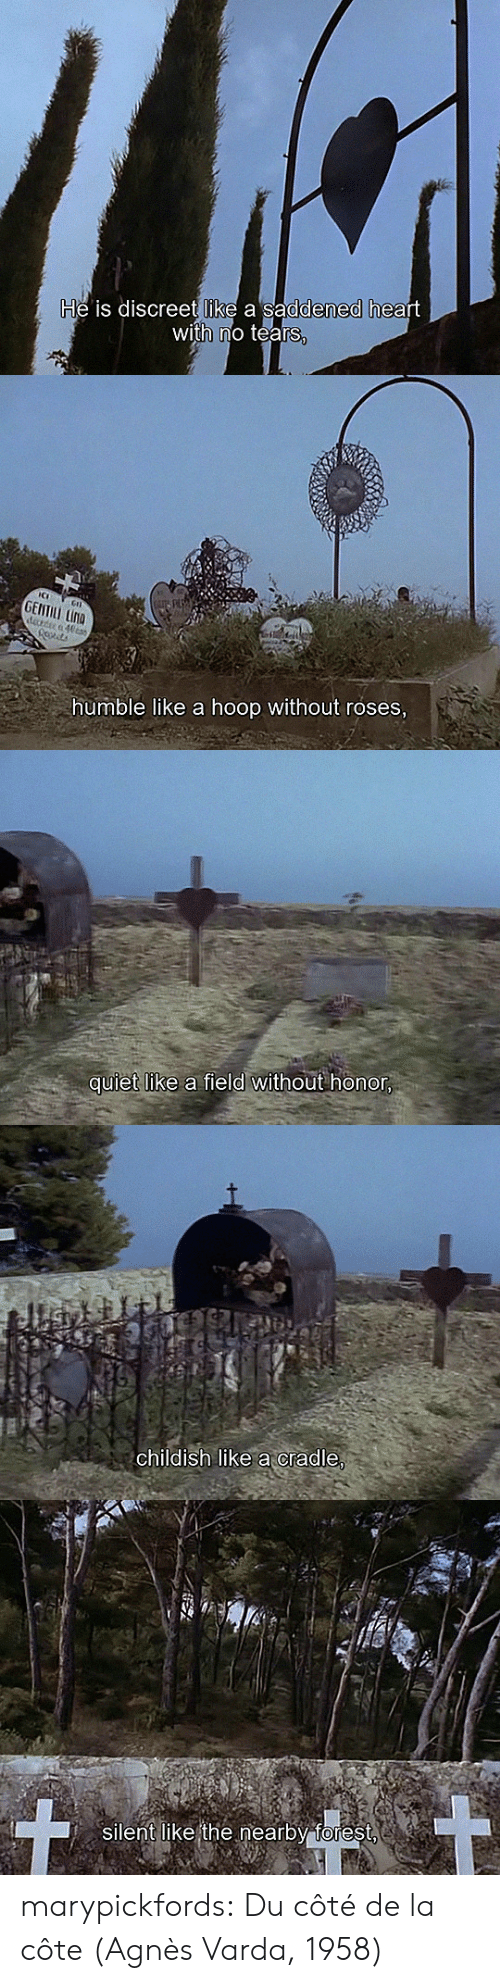 Tumblr, Blog, and Heart: He is discreet like a saddened heart  with no tears,   GENTILL LINA  drde 40ta  humble like a hoop without roses,   quiet like a field without honor,   childish like acradle,   silent like the nearby forest marypickfords: Du côté de la côte (Agnès Varda, 1958)